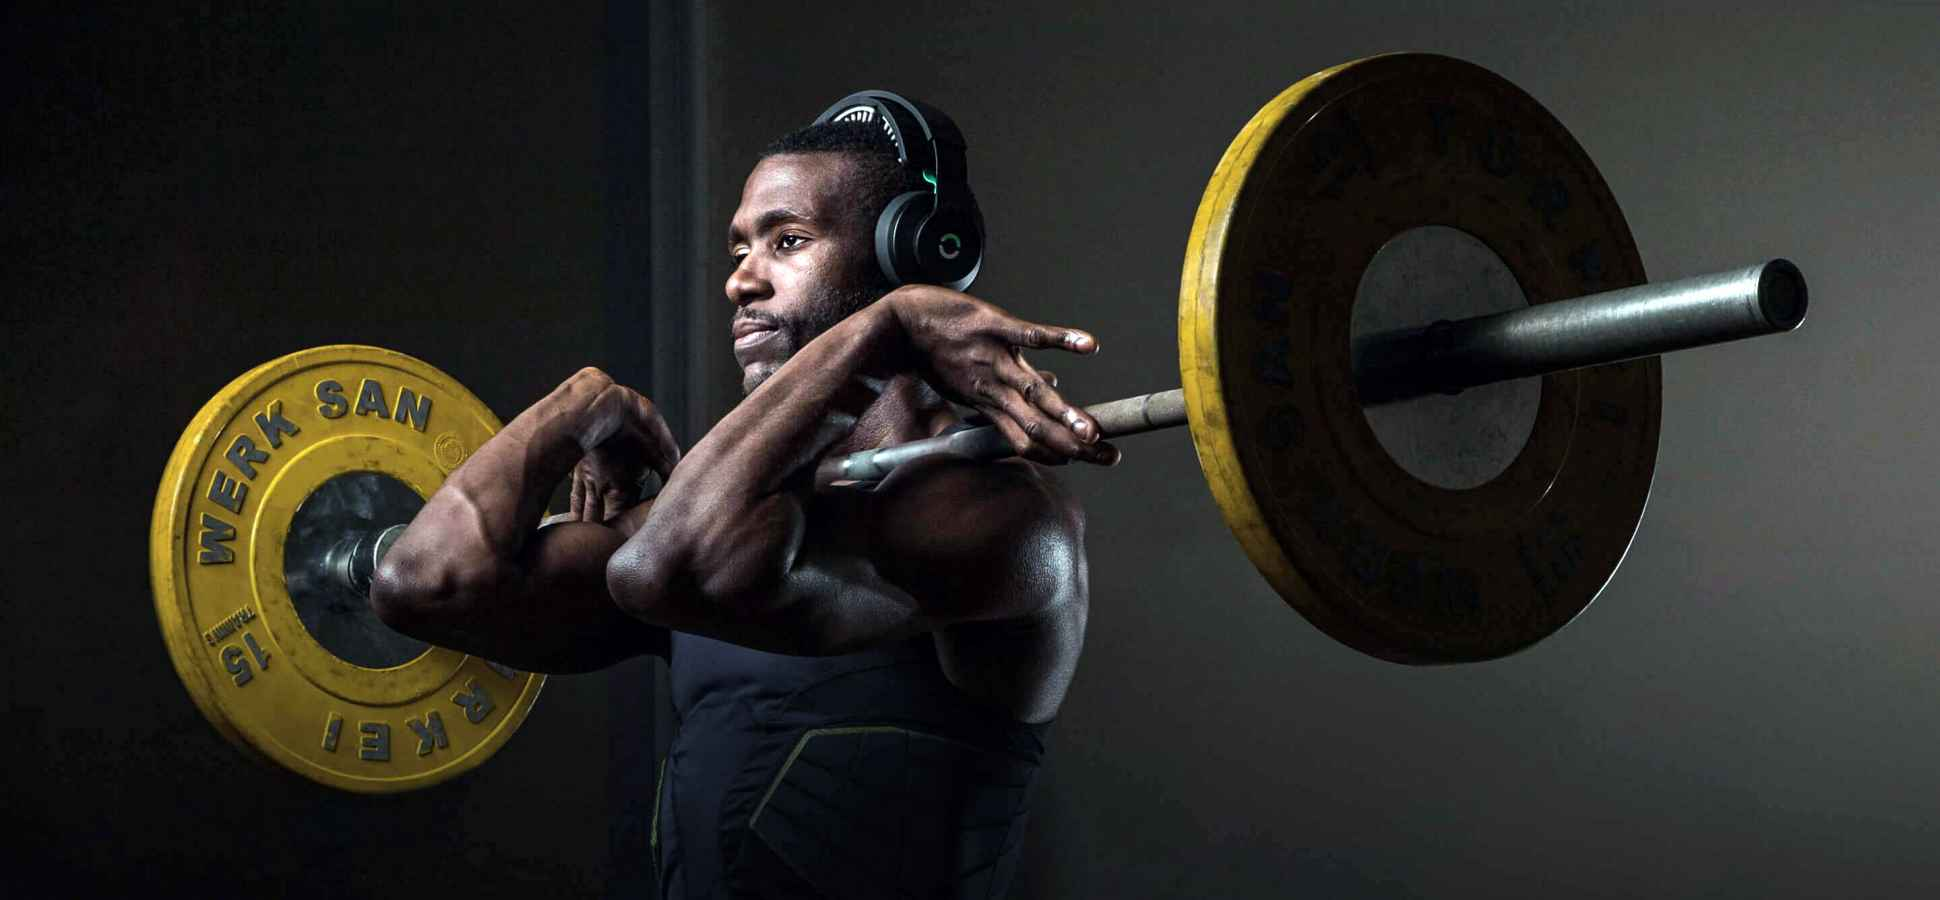 This Headphone Uses Neuroscience to Help Athletes Train 50 Percent Faster